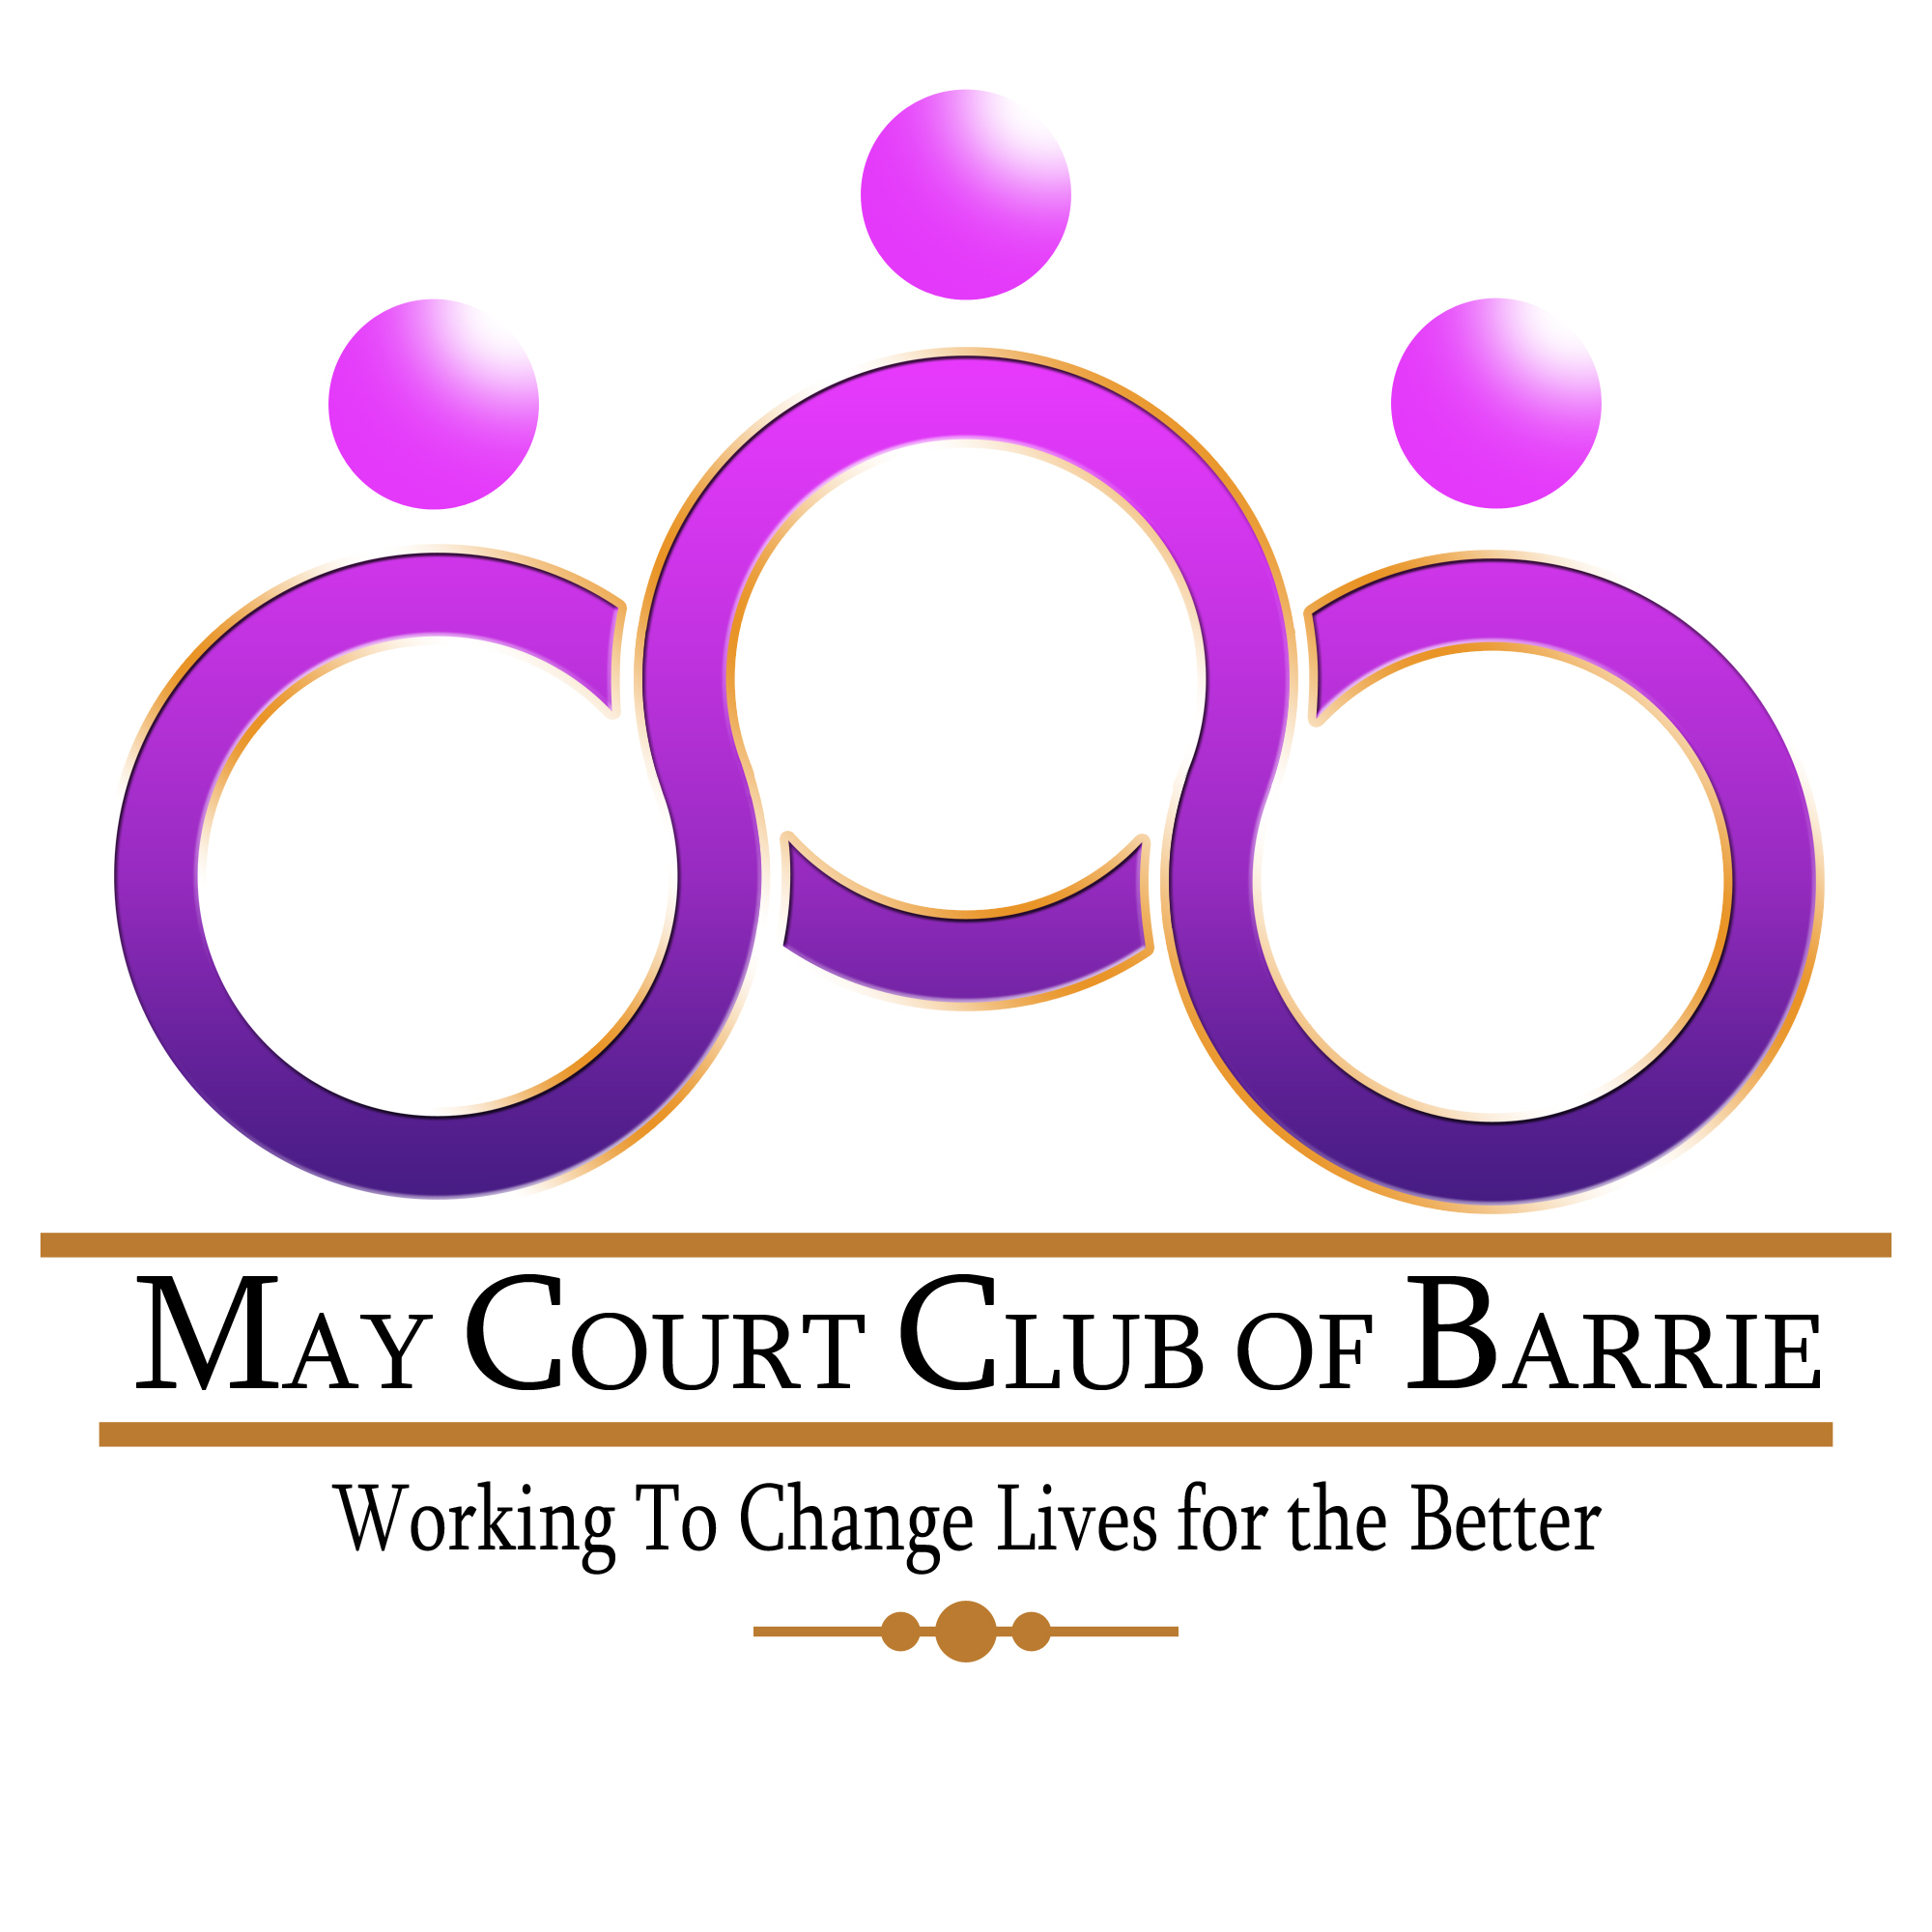 Logo Design by Ervin Beñez - Entry No. 21 in the Logo Design Contest New Logo Design for MAY COURT CLUB OF BARRIE.